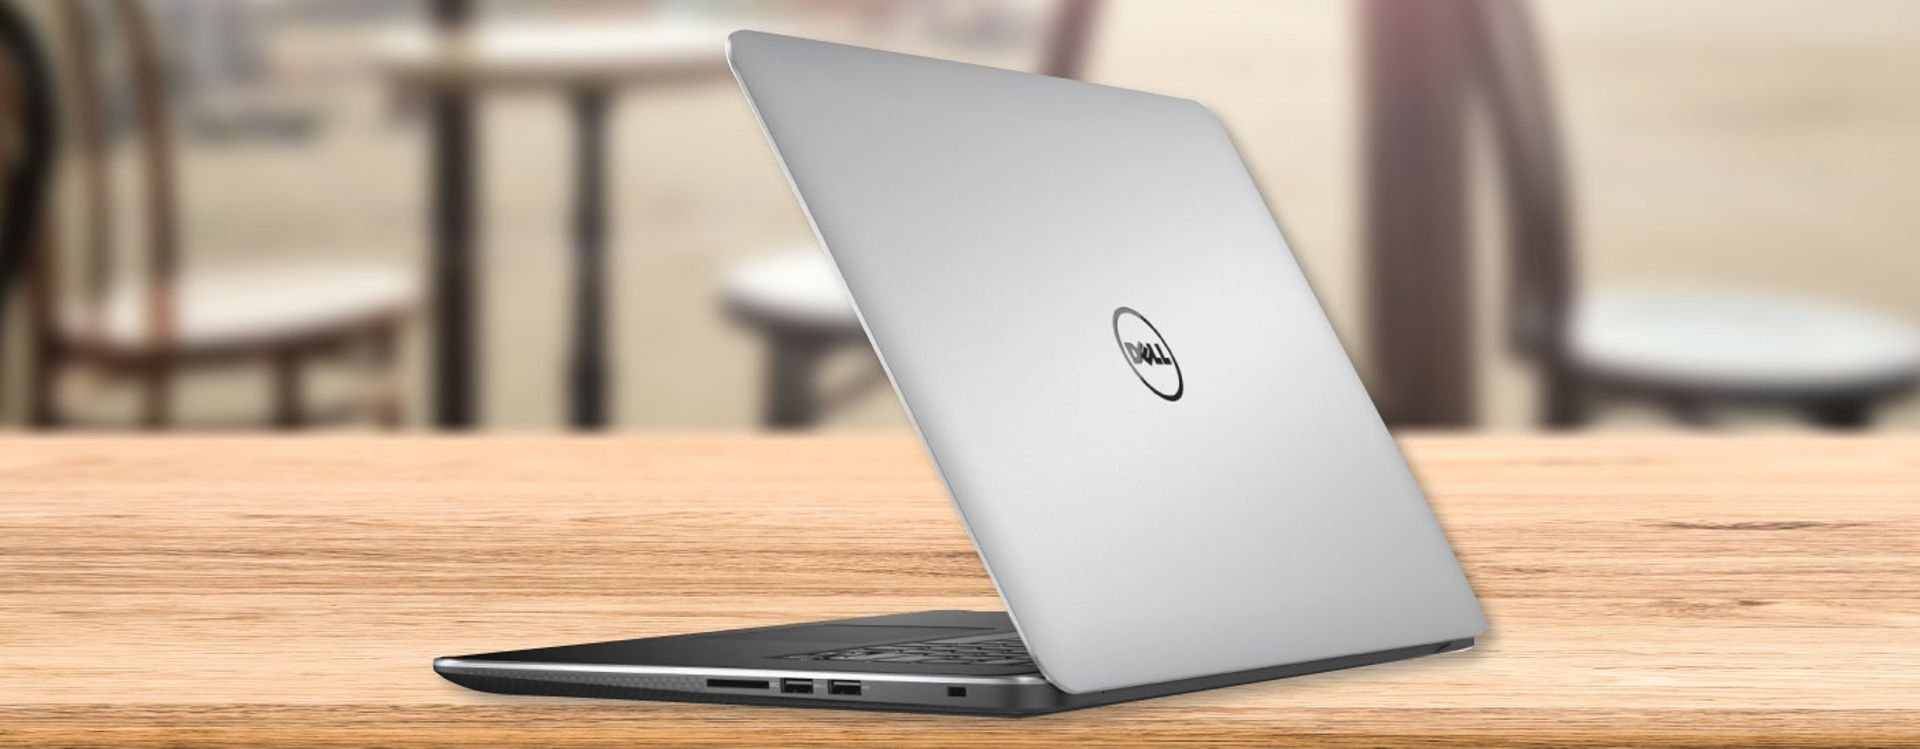 According to the Survey we carried at Labeb, Dell Laptops were the first on our List of the most Sold Laptop in Jordan.